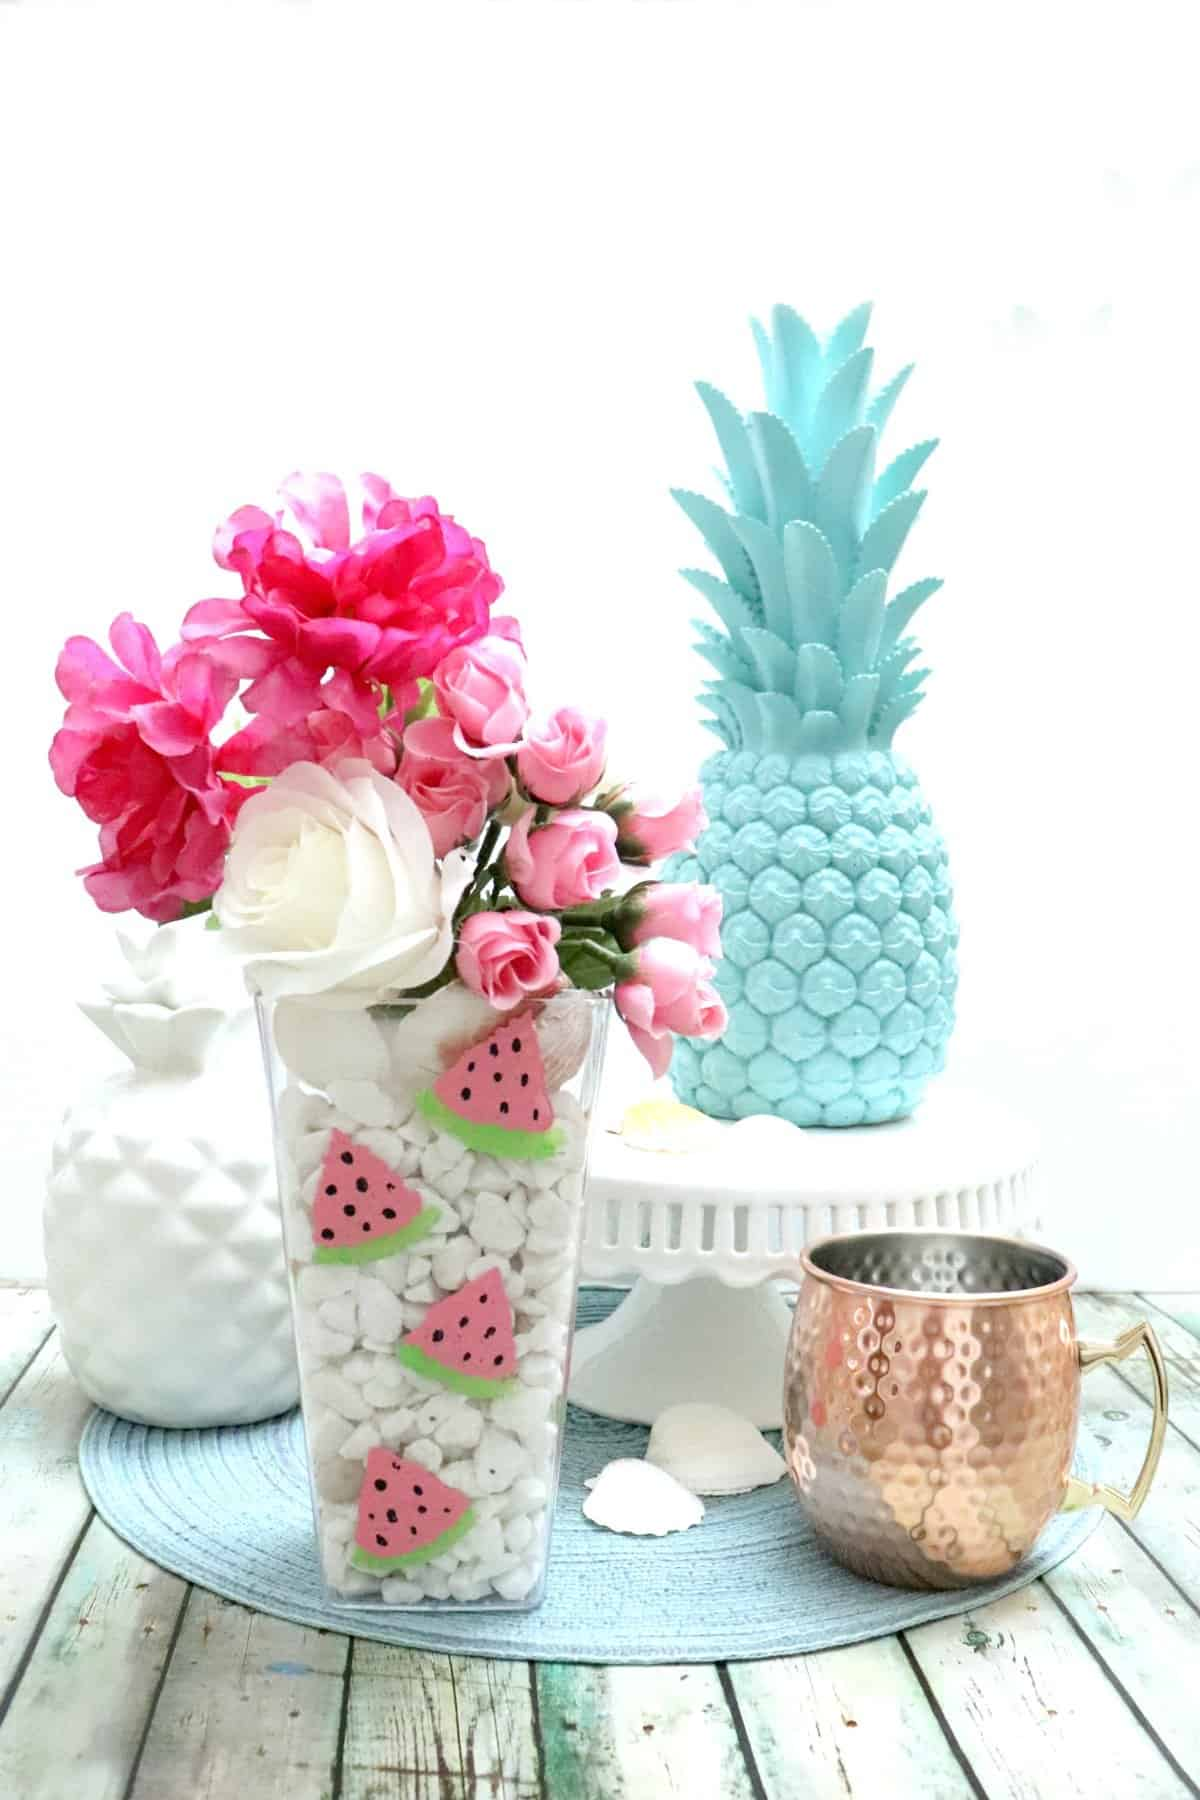 Dollar Store sponge paint watermelon vase for summer table